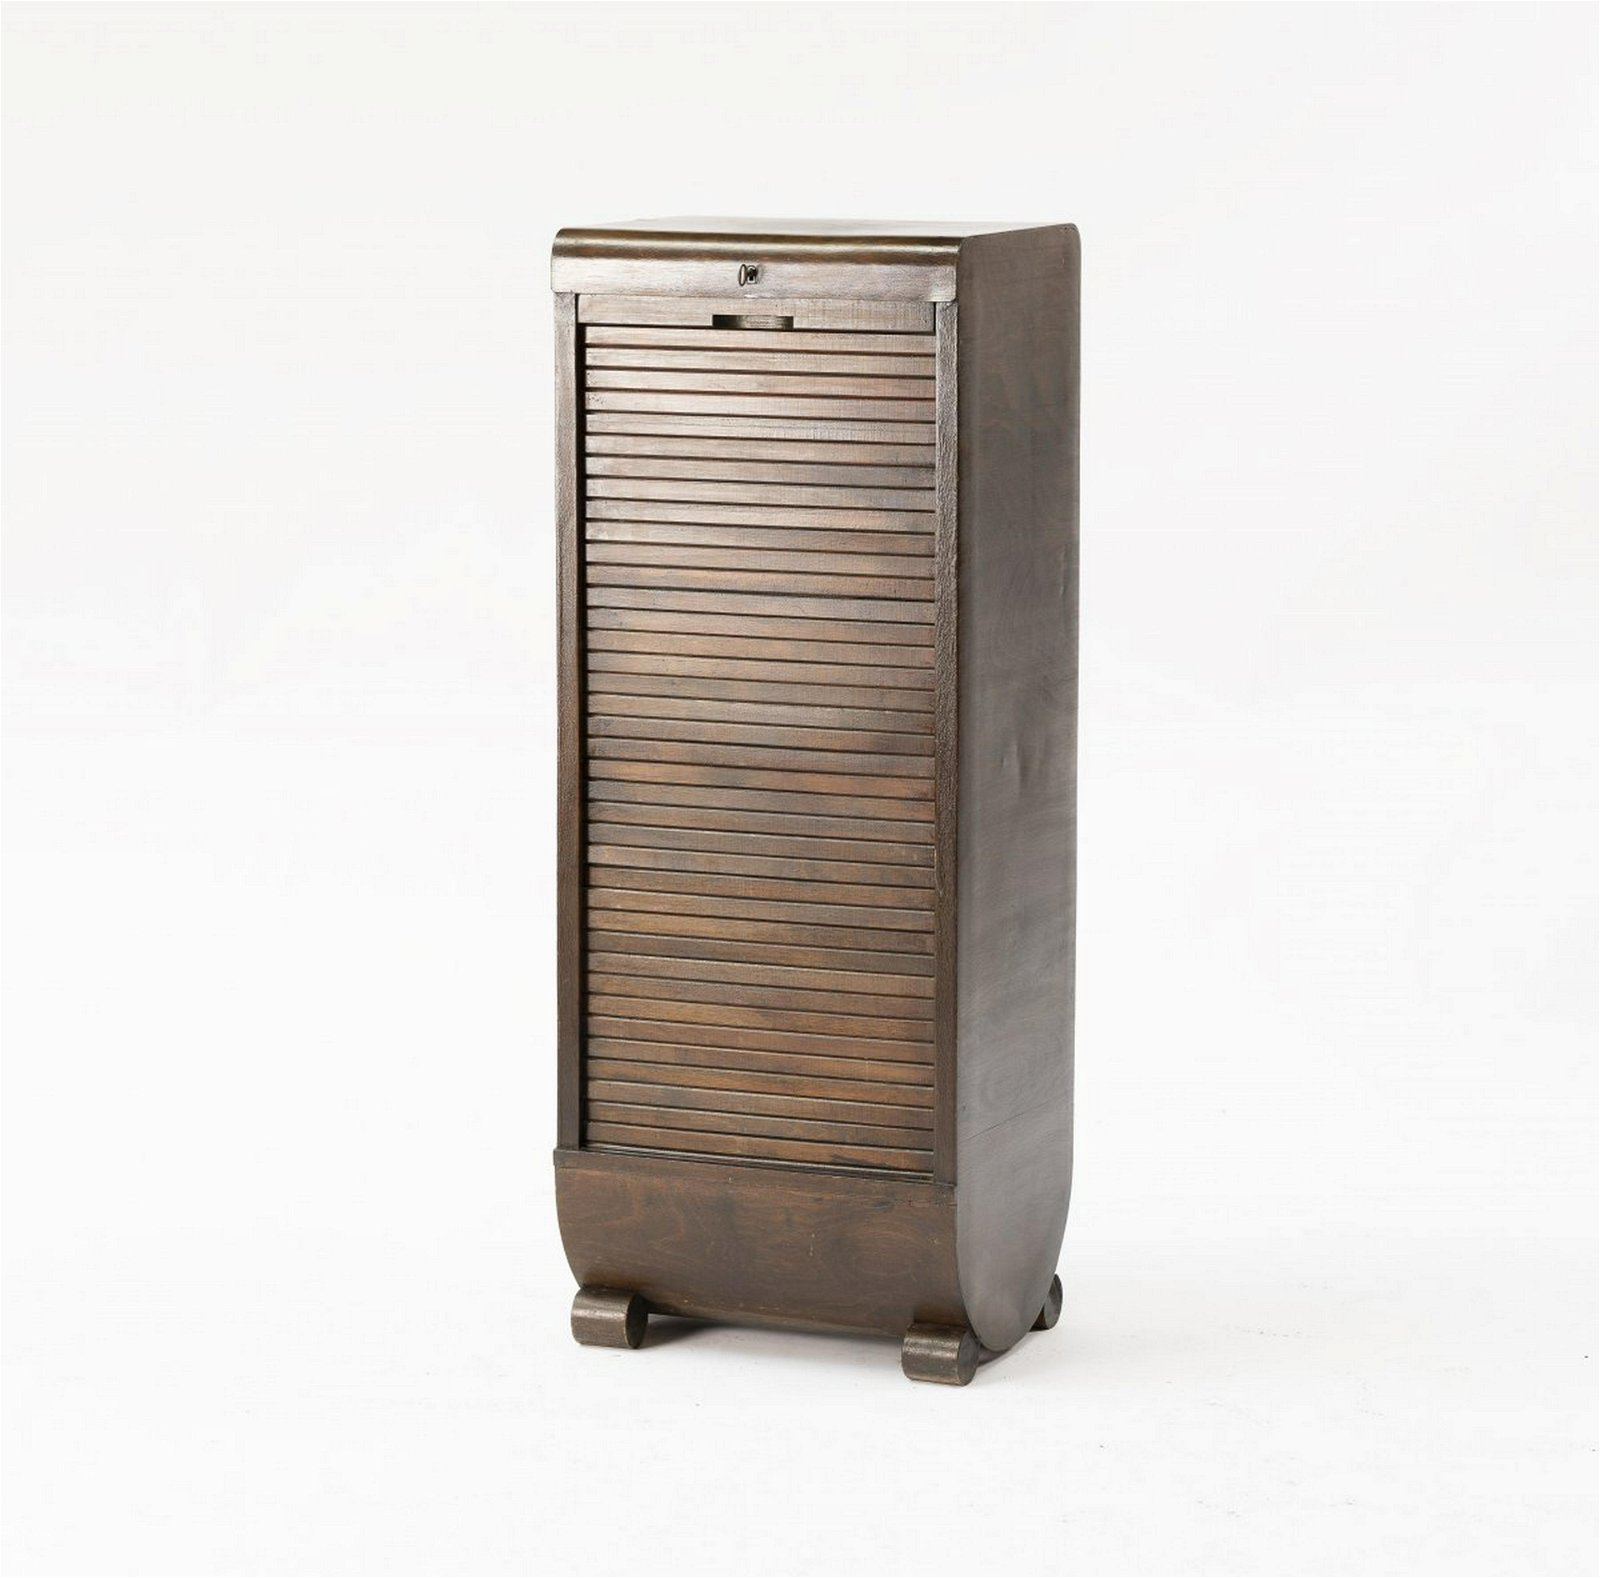 Germany, Filing cabinet, 1920/30s